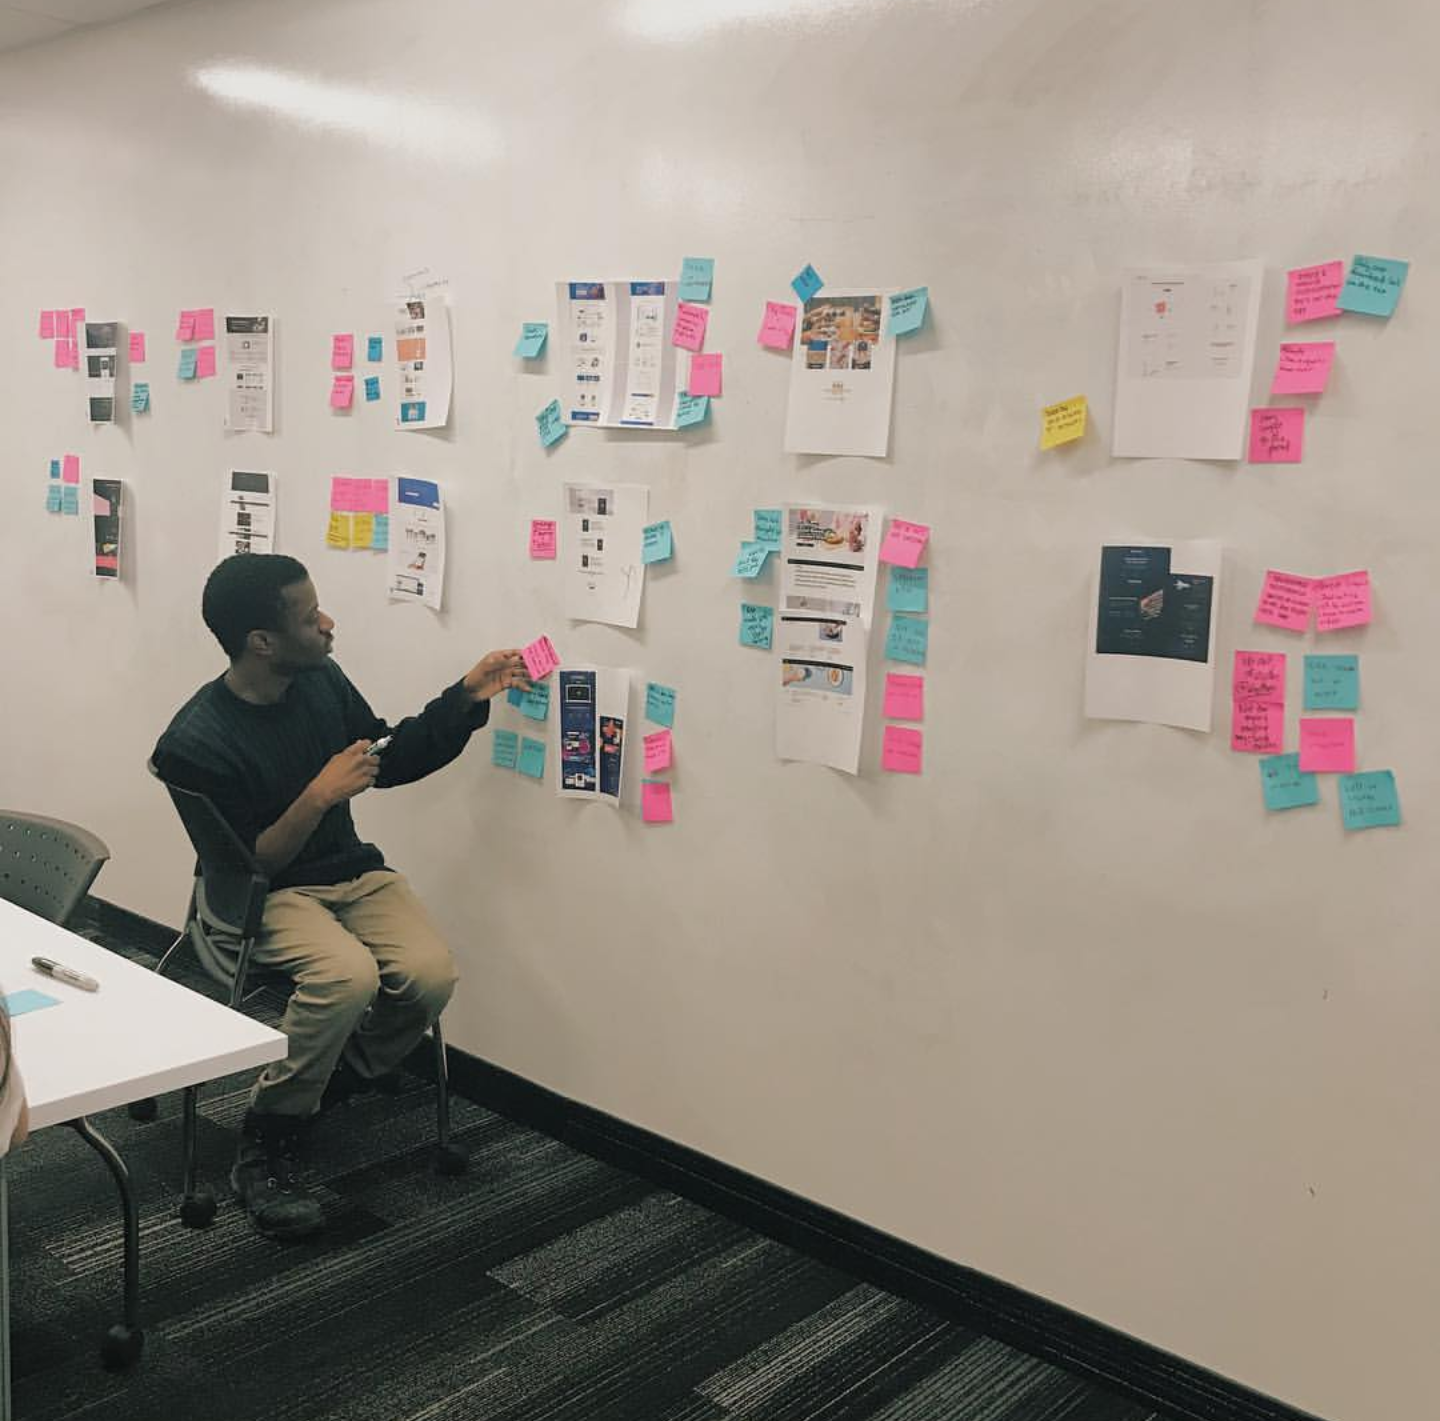 Mackenzie Derival working on a UX project in a design studio setting.